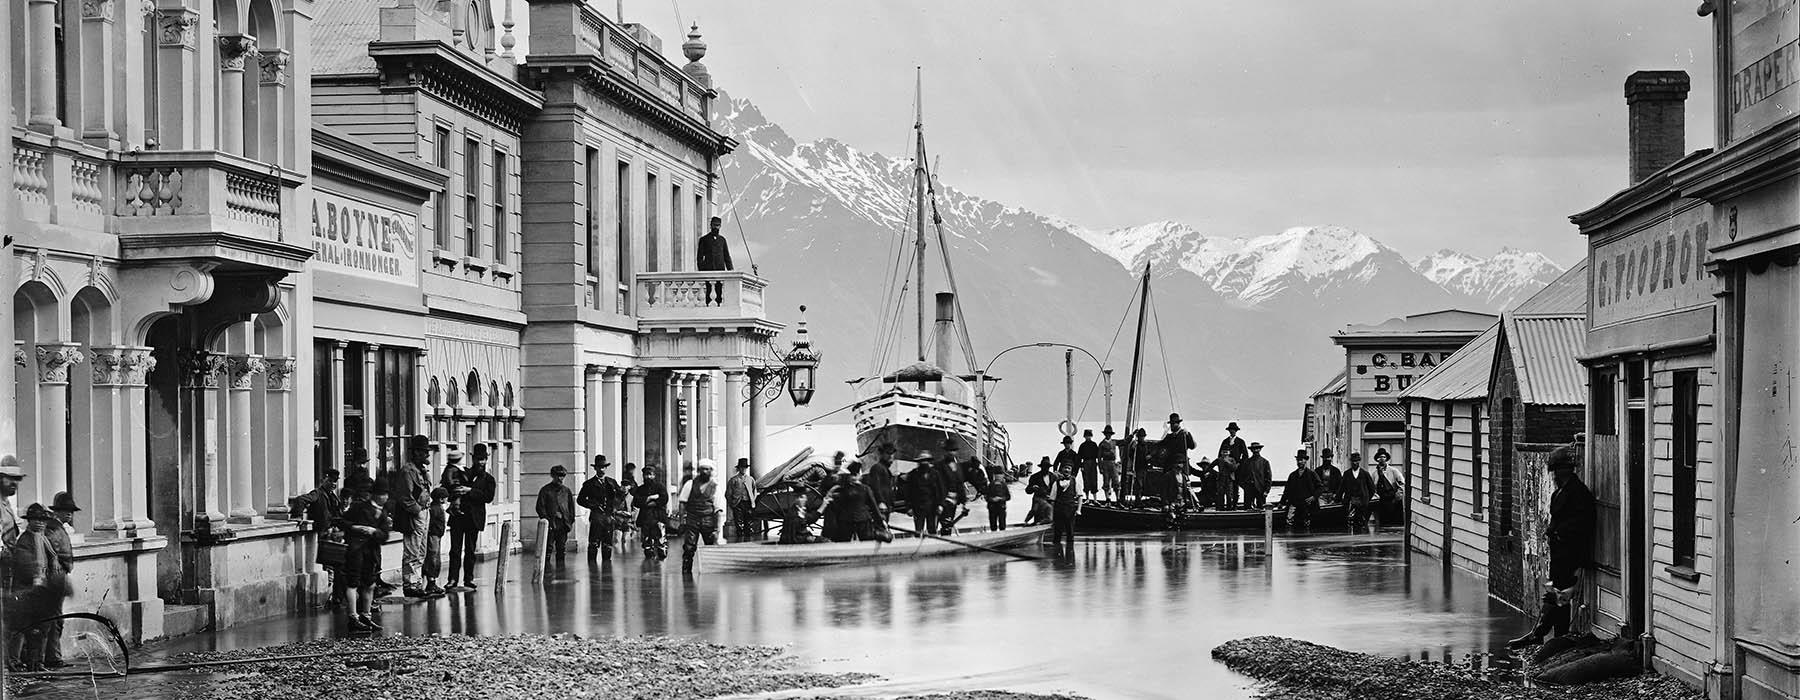 Photograph of Queenstown flooded in 1878